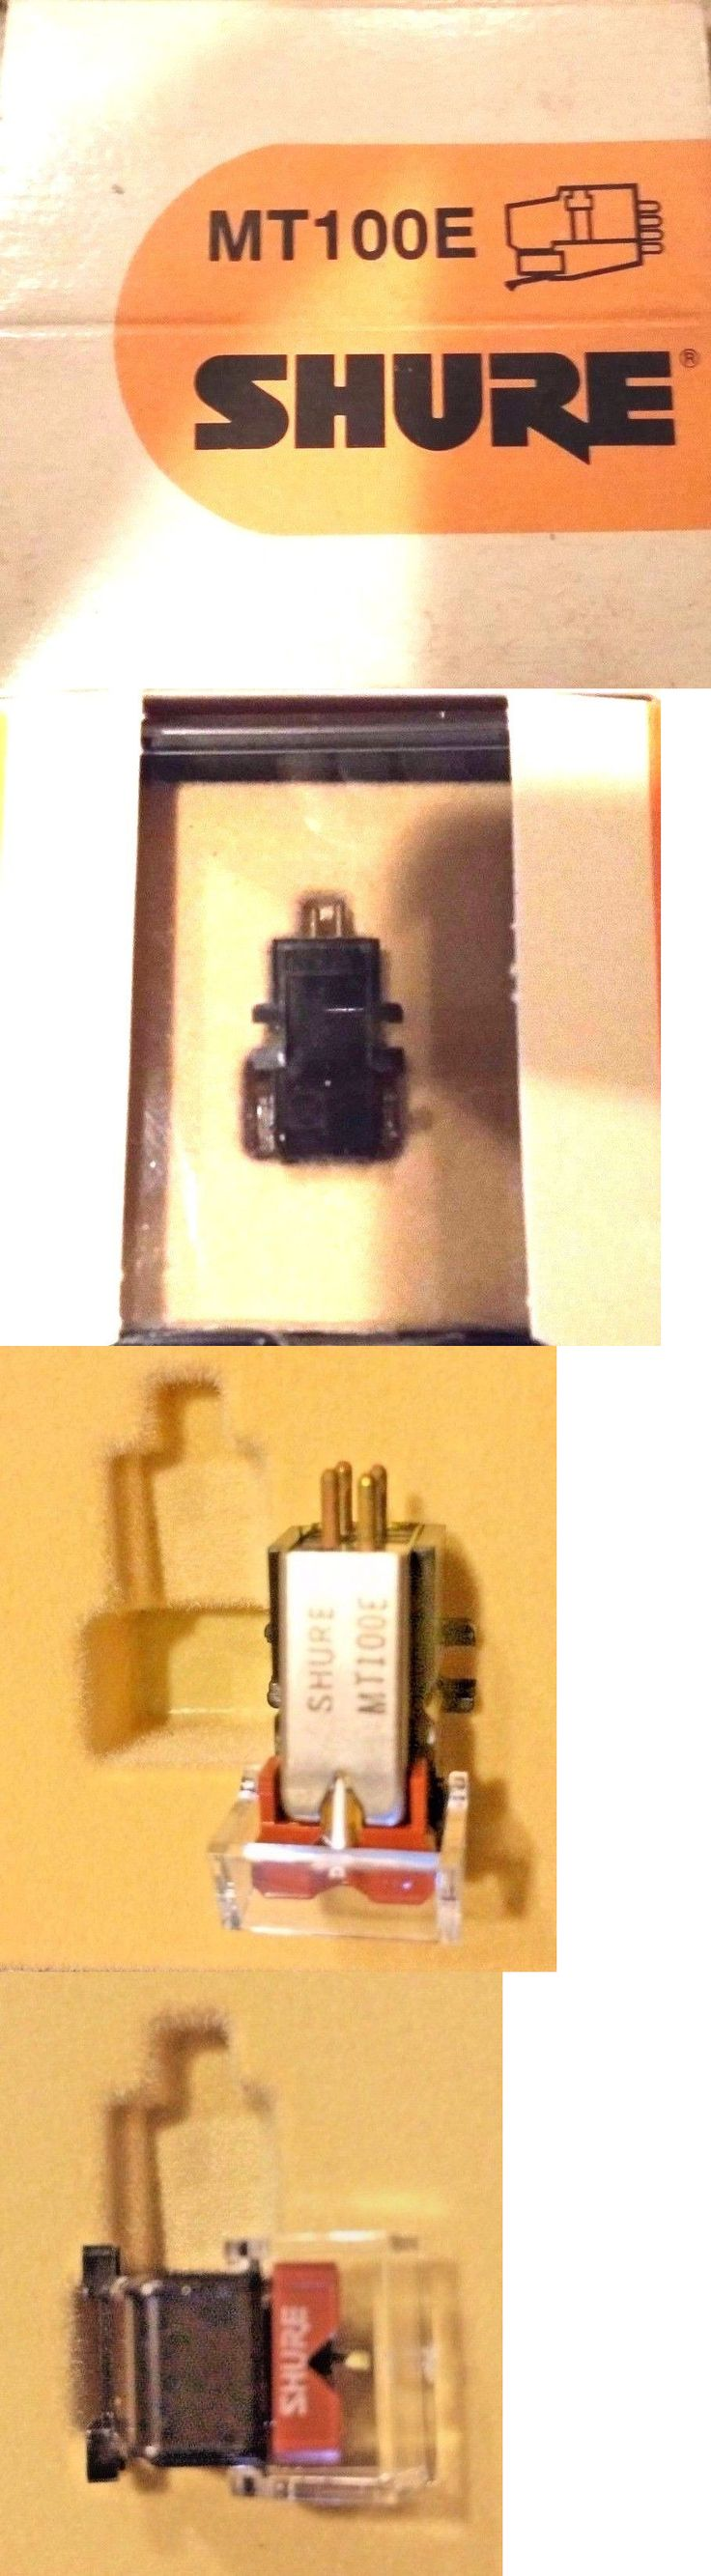 Record Player Turntable Parts: Phonograph Turntable Stylus Needle And Cartridge - Shure Mt100e, Must See!! -> BUY IT NOW ONLY: $35 on eBay!